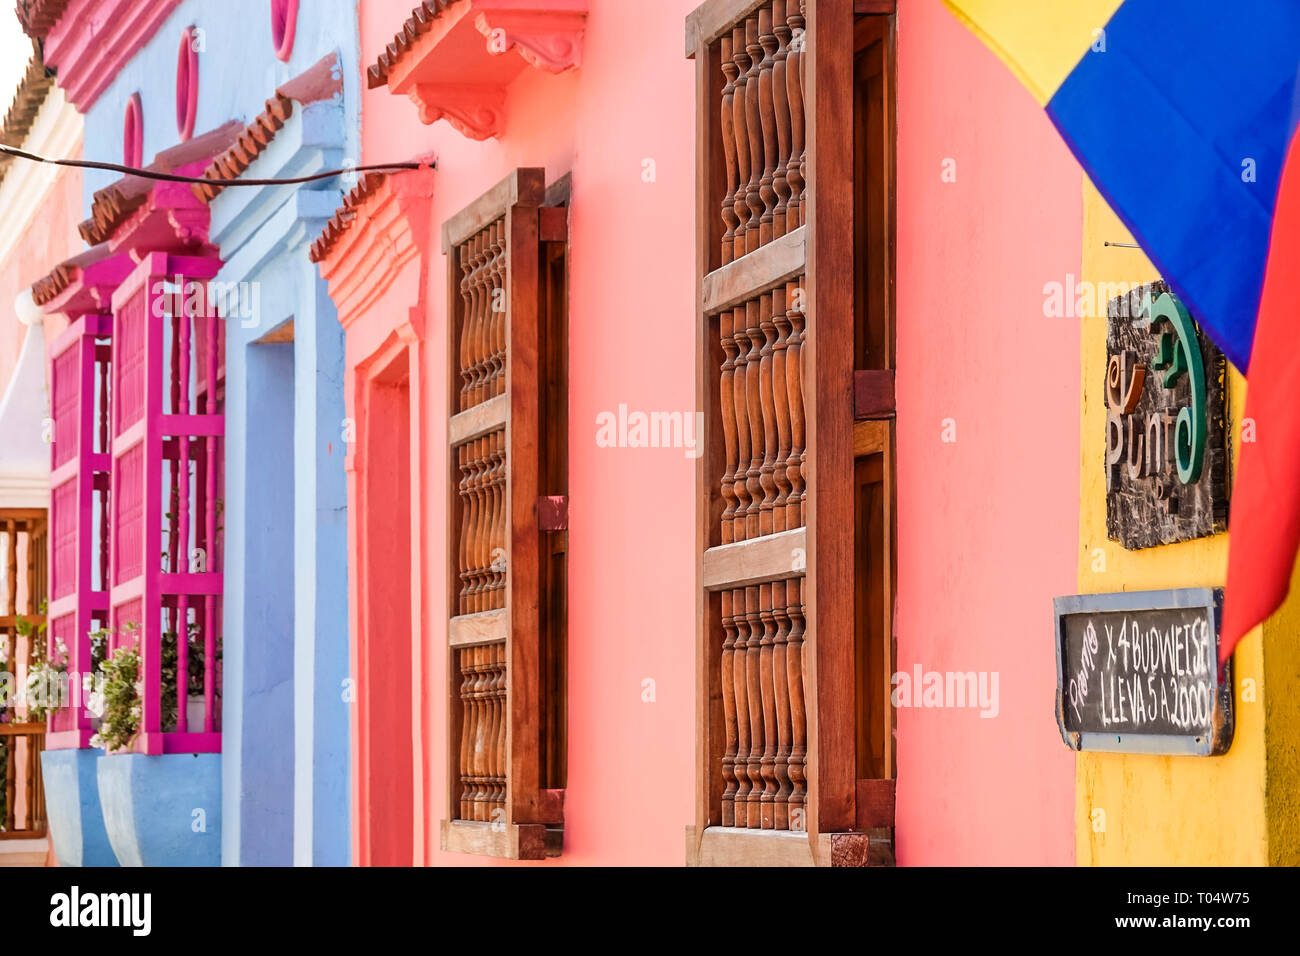 Colombia, Cartagena, Old Walled City Center centre, San Diego, colorful, buildings, colonial wood spindle window bars, sightseeing visitors travel tra Stock Photo